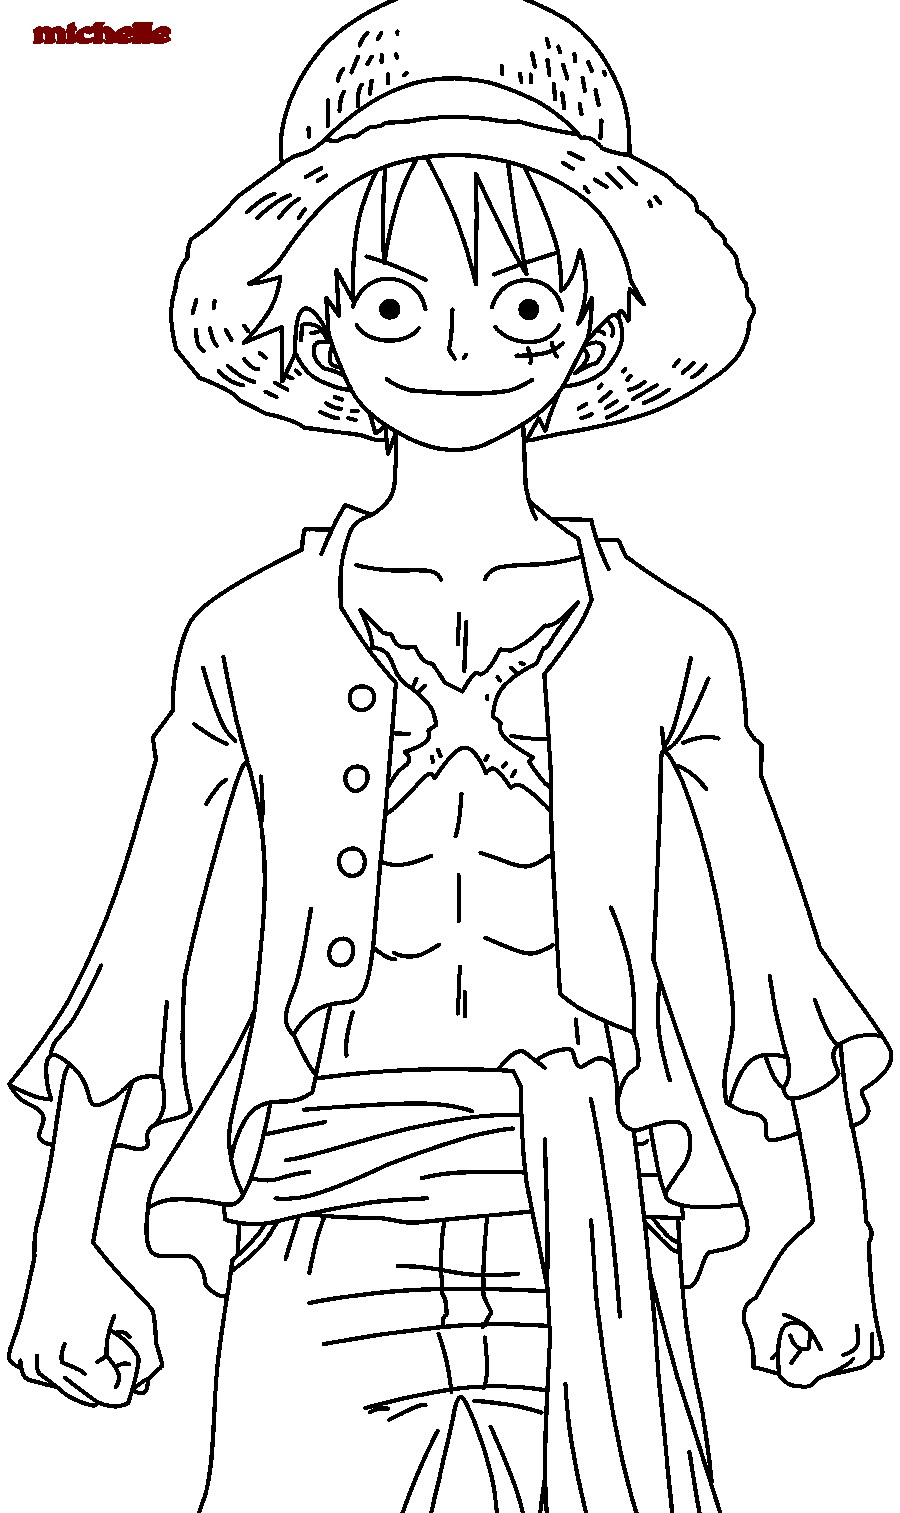 One Piece Coloring Pages - Find Coloring Pages